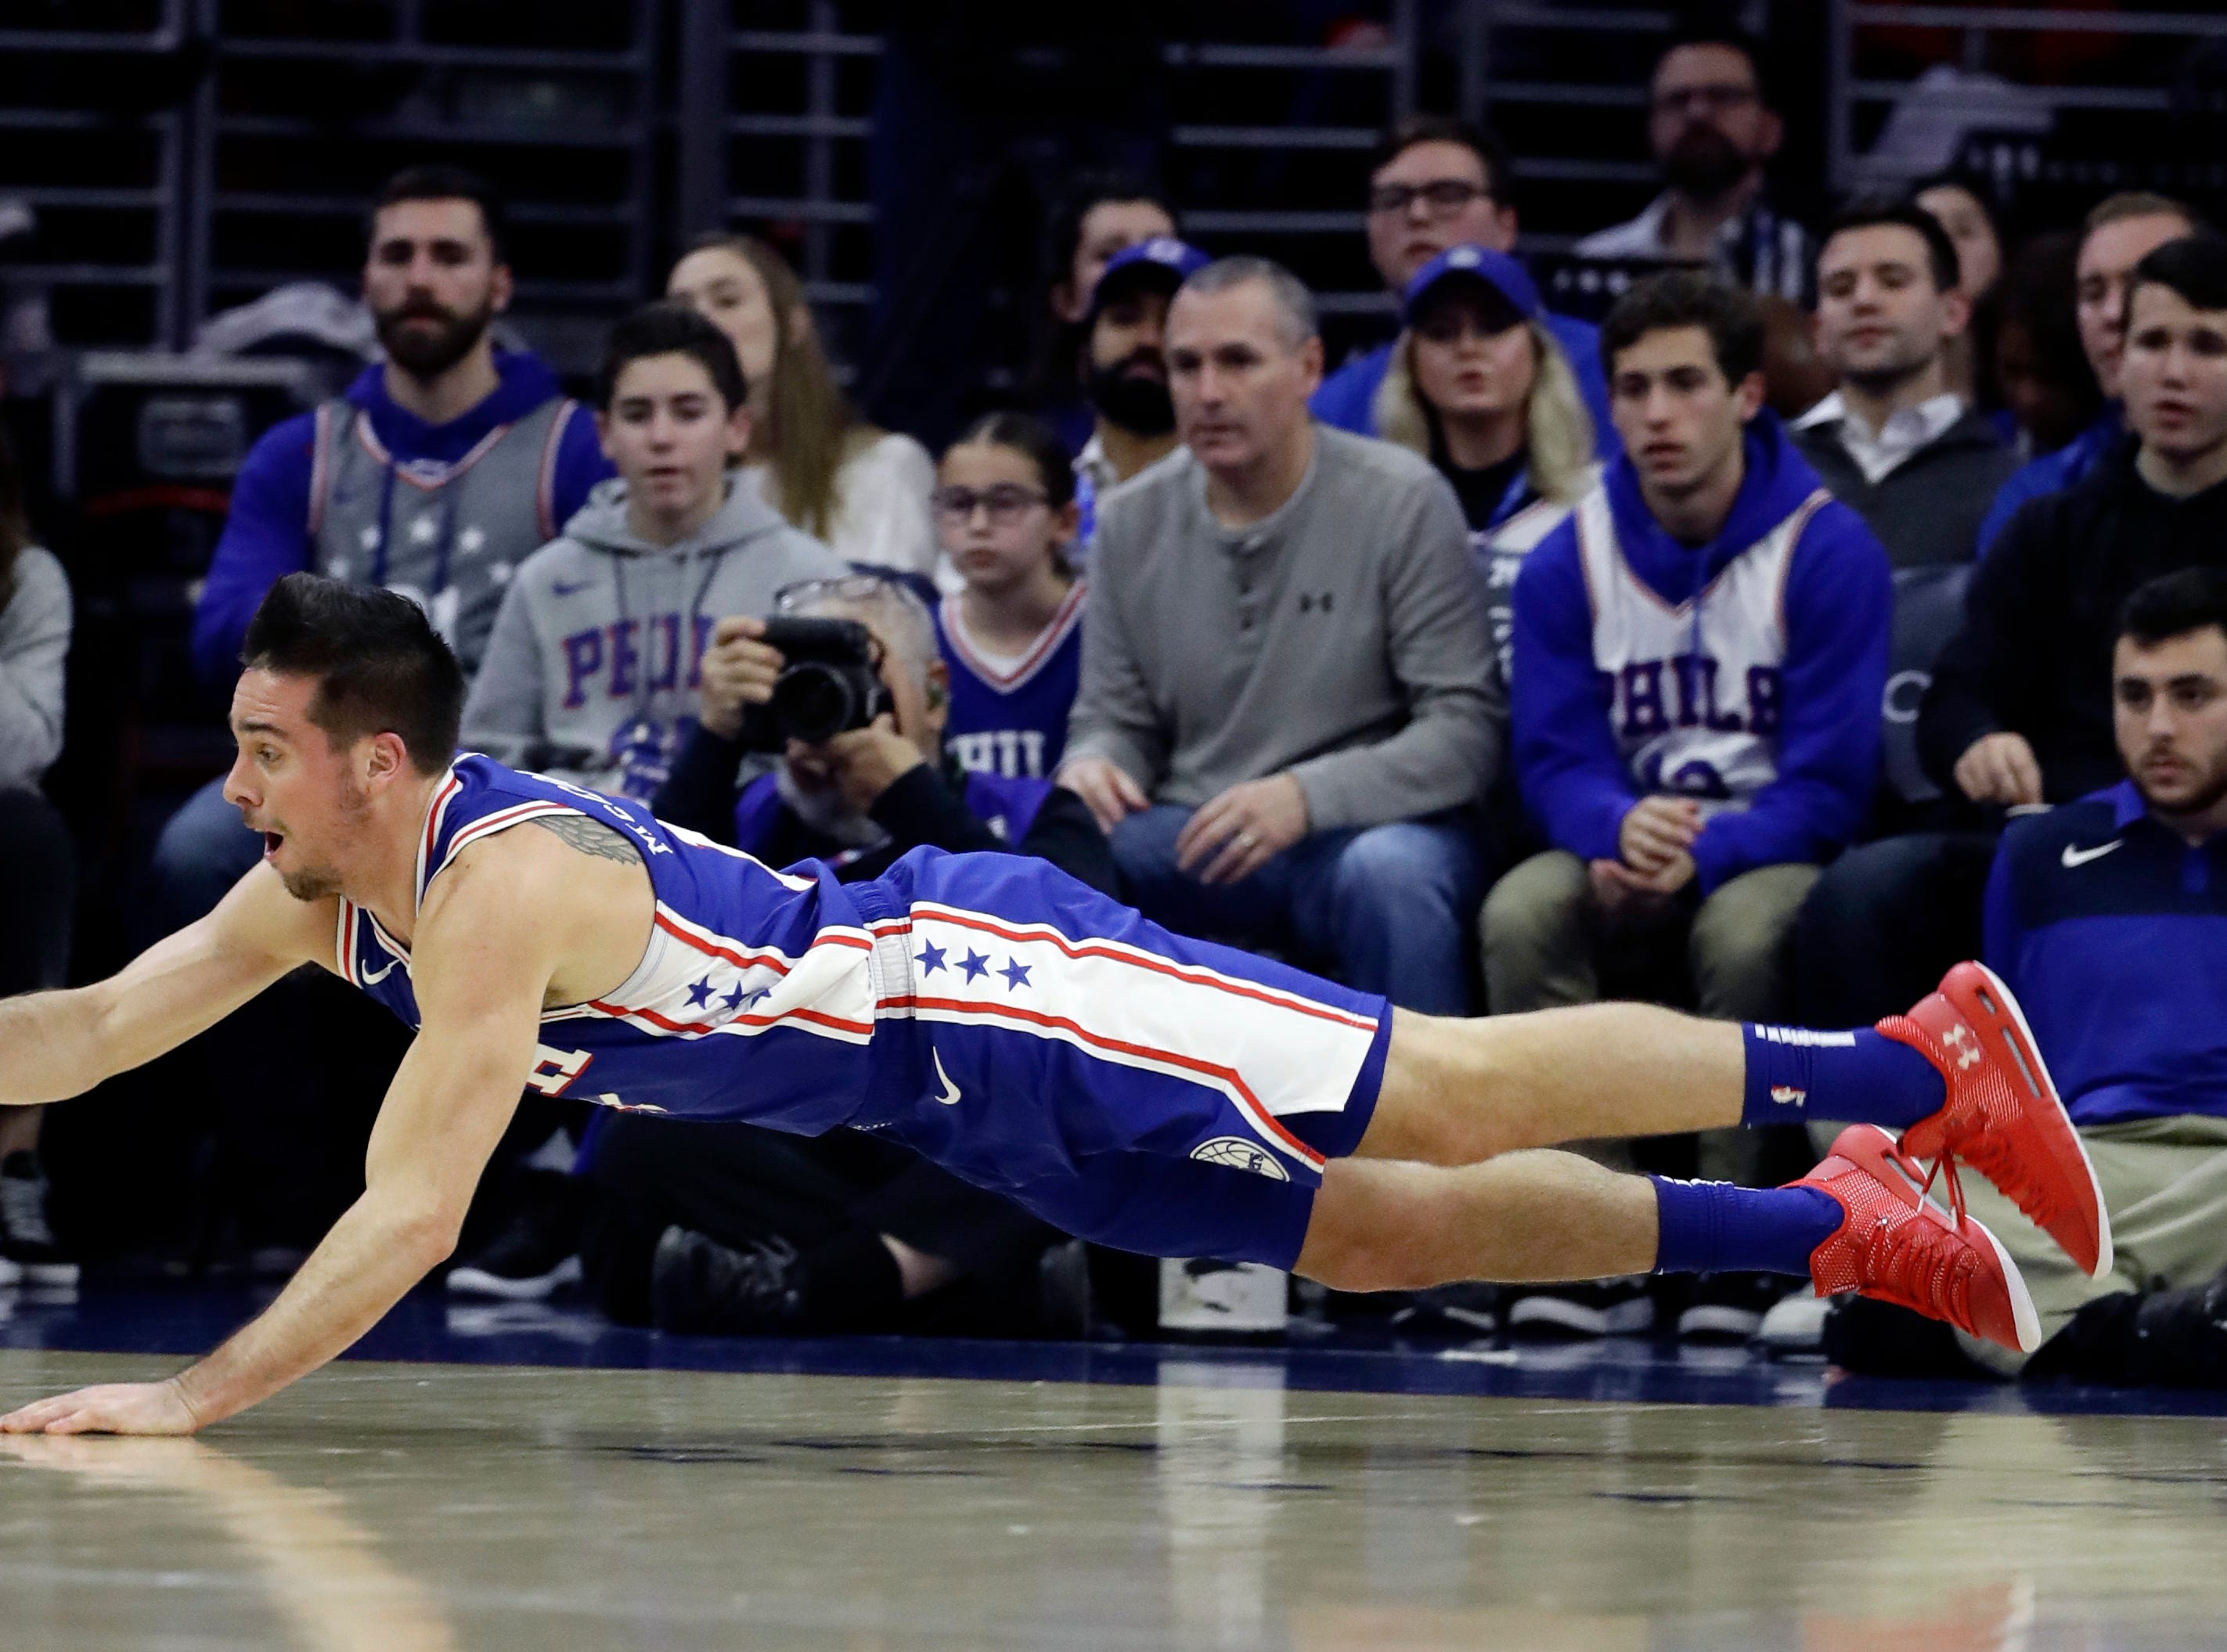 Philadelphia 76ers' T.J. McConnell dives for a loose ball during the first half of an NBA basketball game against the Washington Wizards, Tuesday, Jan. 8, 2019, in Philadelphia. (AP Photo/Matt Slocum)